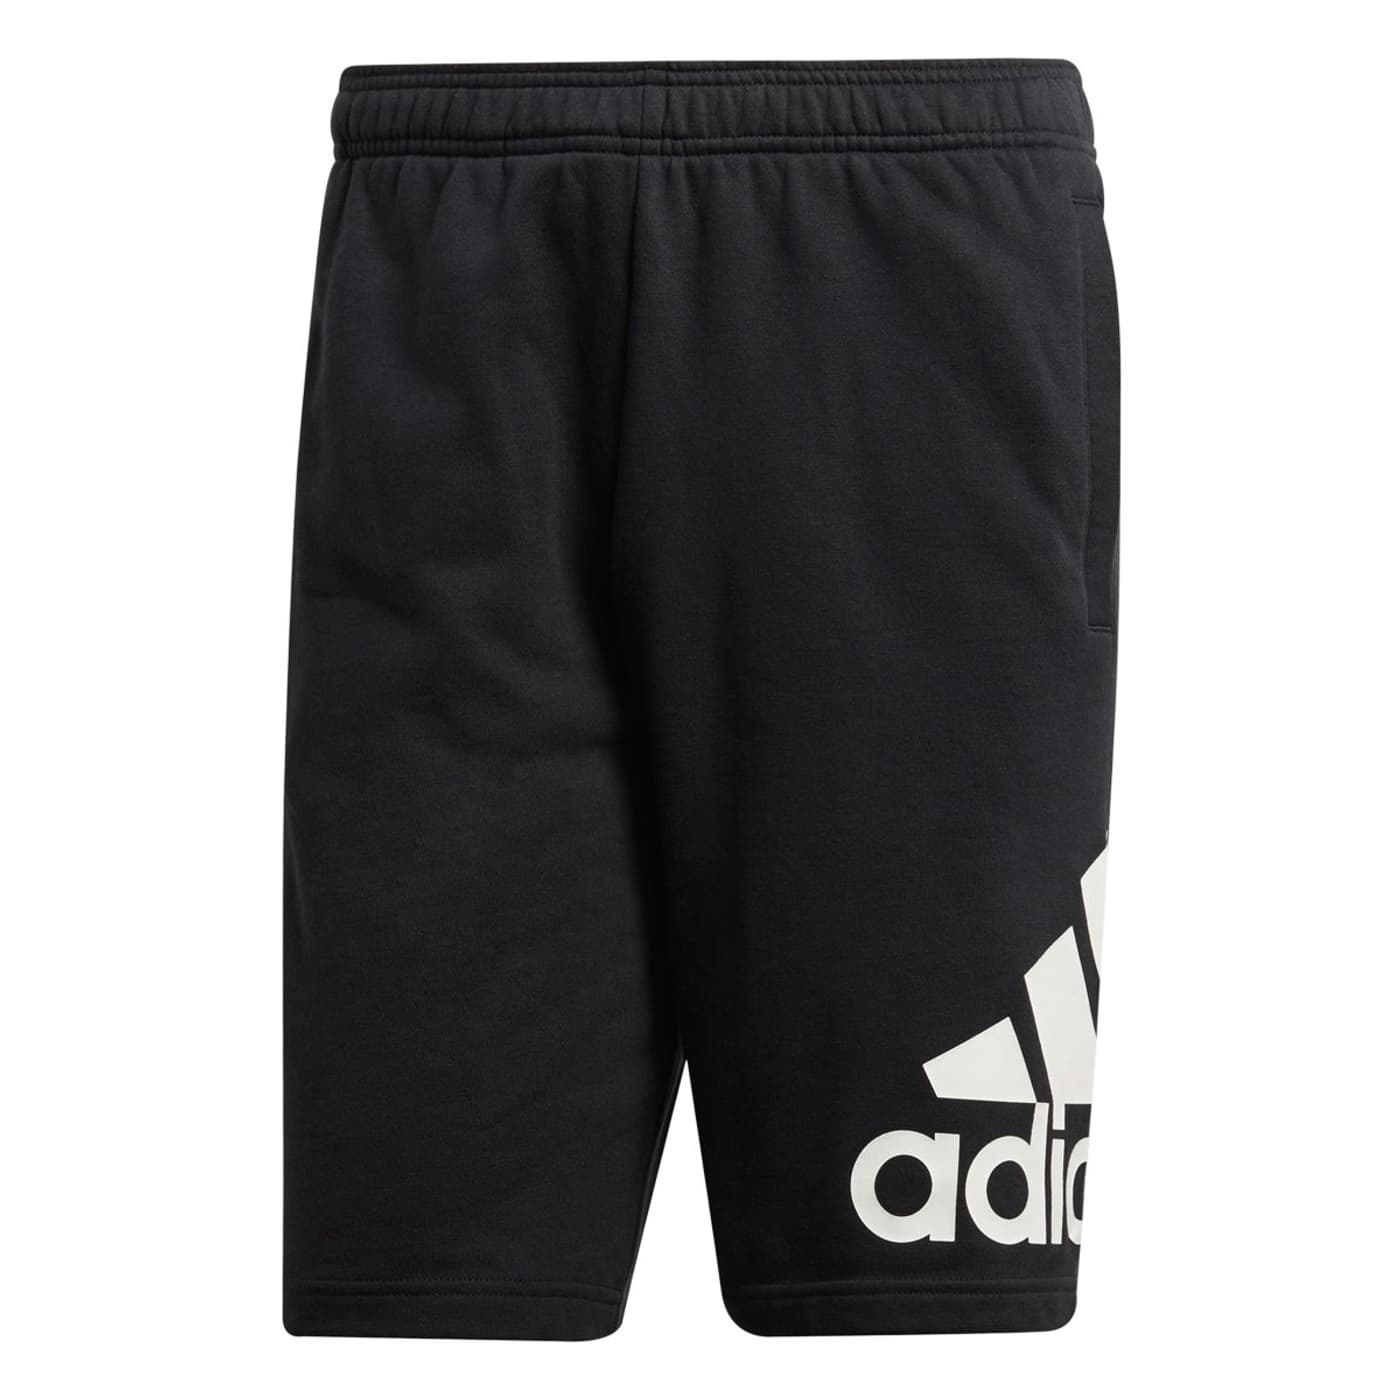 Homme Short Adidas Essentials Pour Chelsea e9WHYED2I